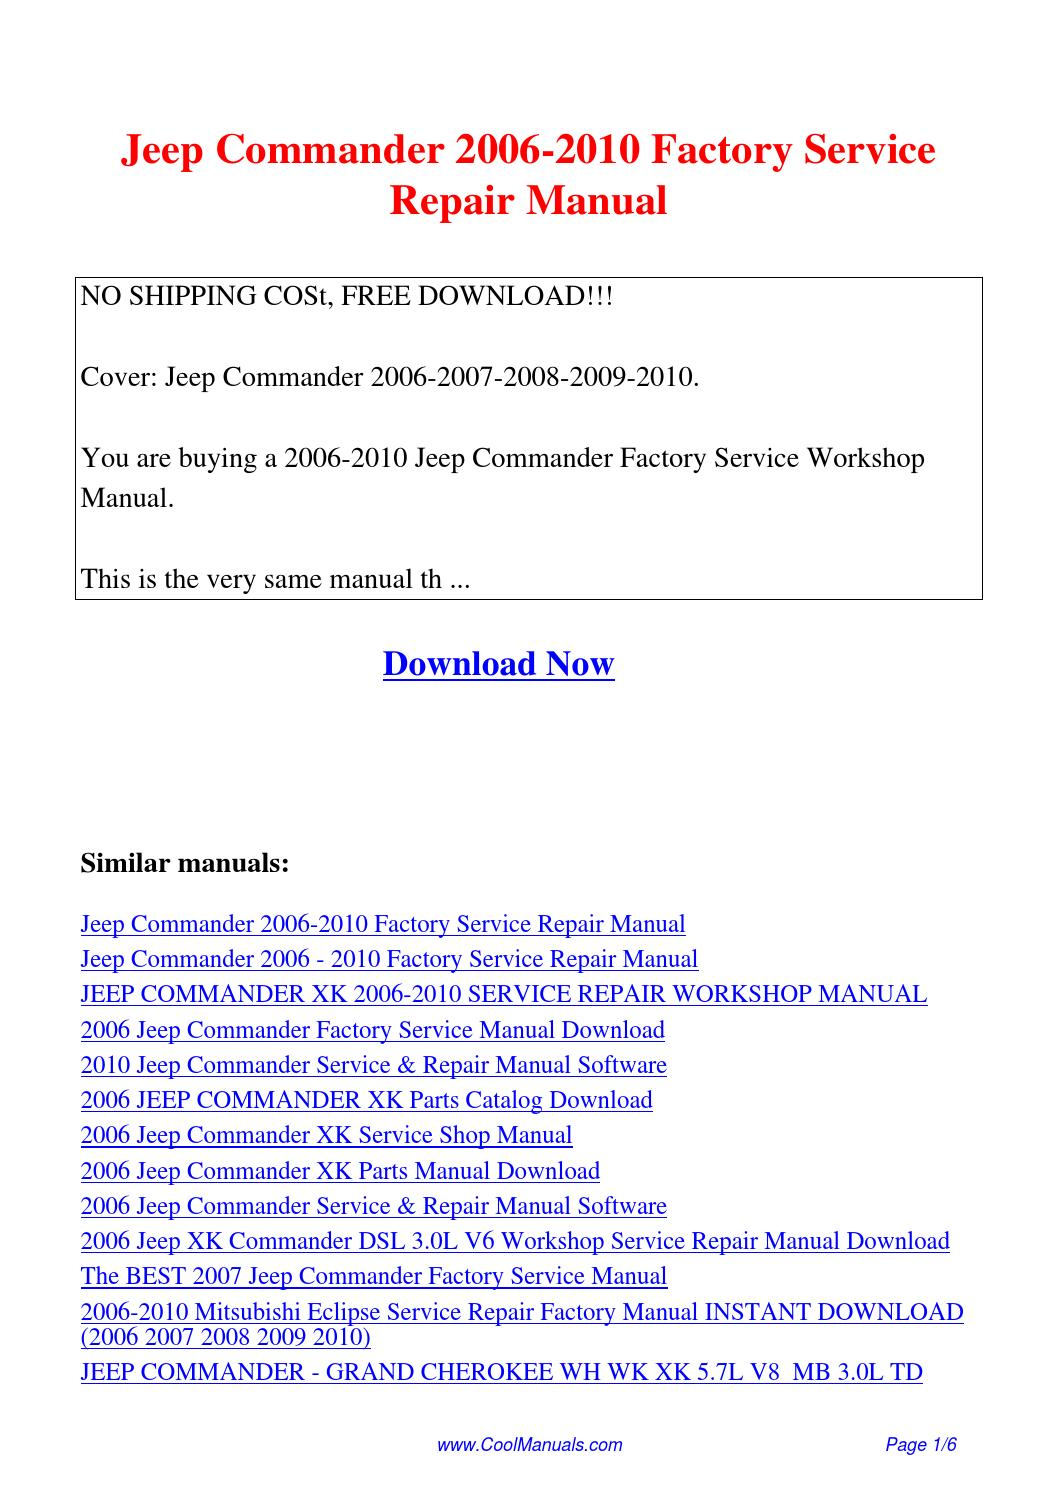 Jeep Commander 2006-2010 Factory Service Repair Manual.pdf by Guang Hui -  issuu